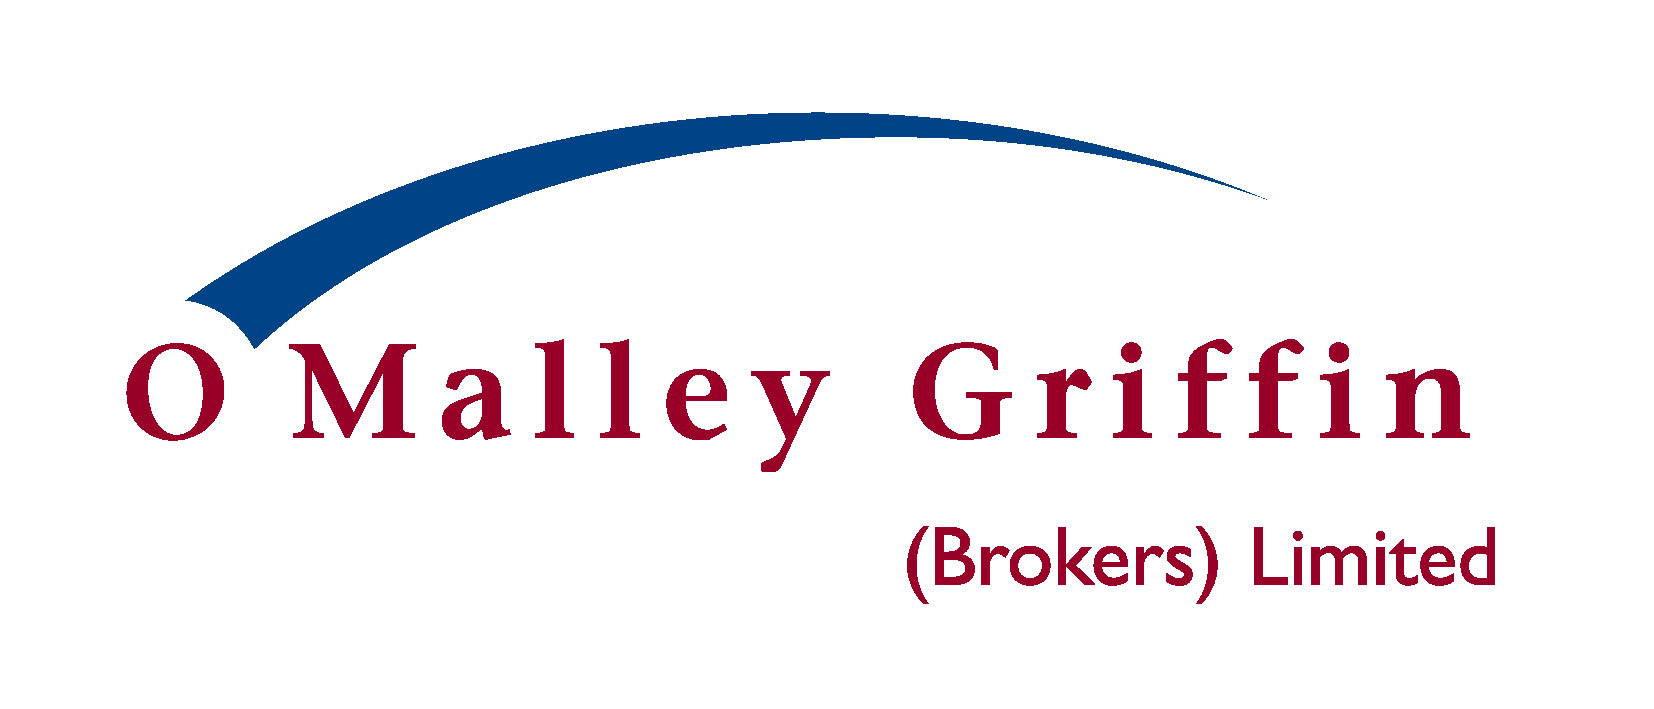 O'Malley Griffin (Broker) Limited Logo